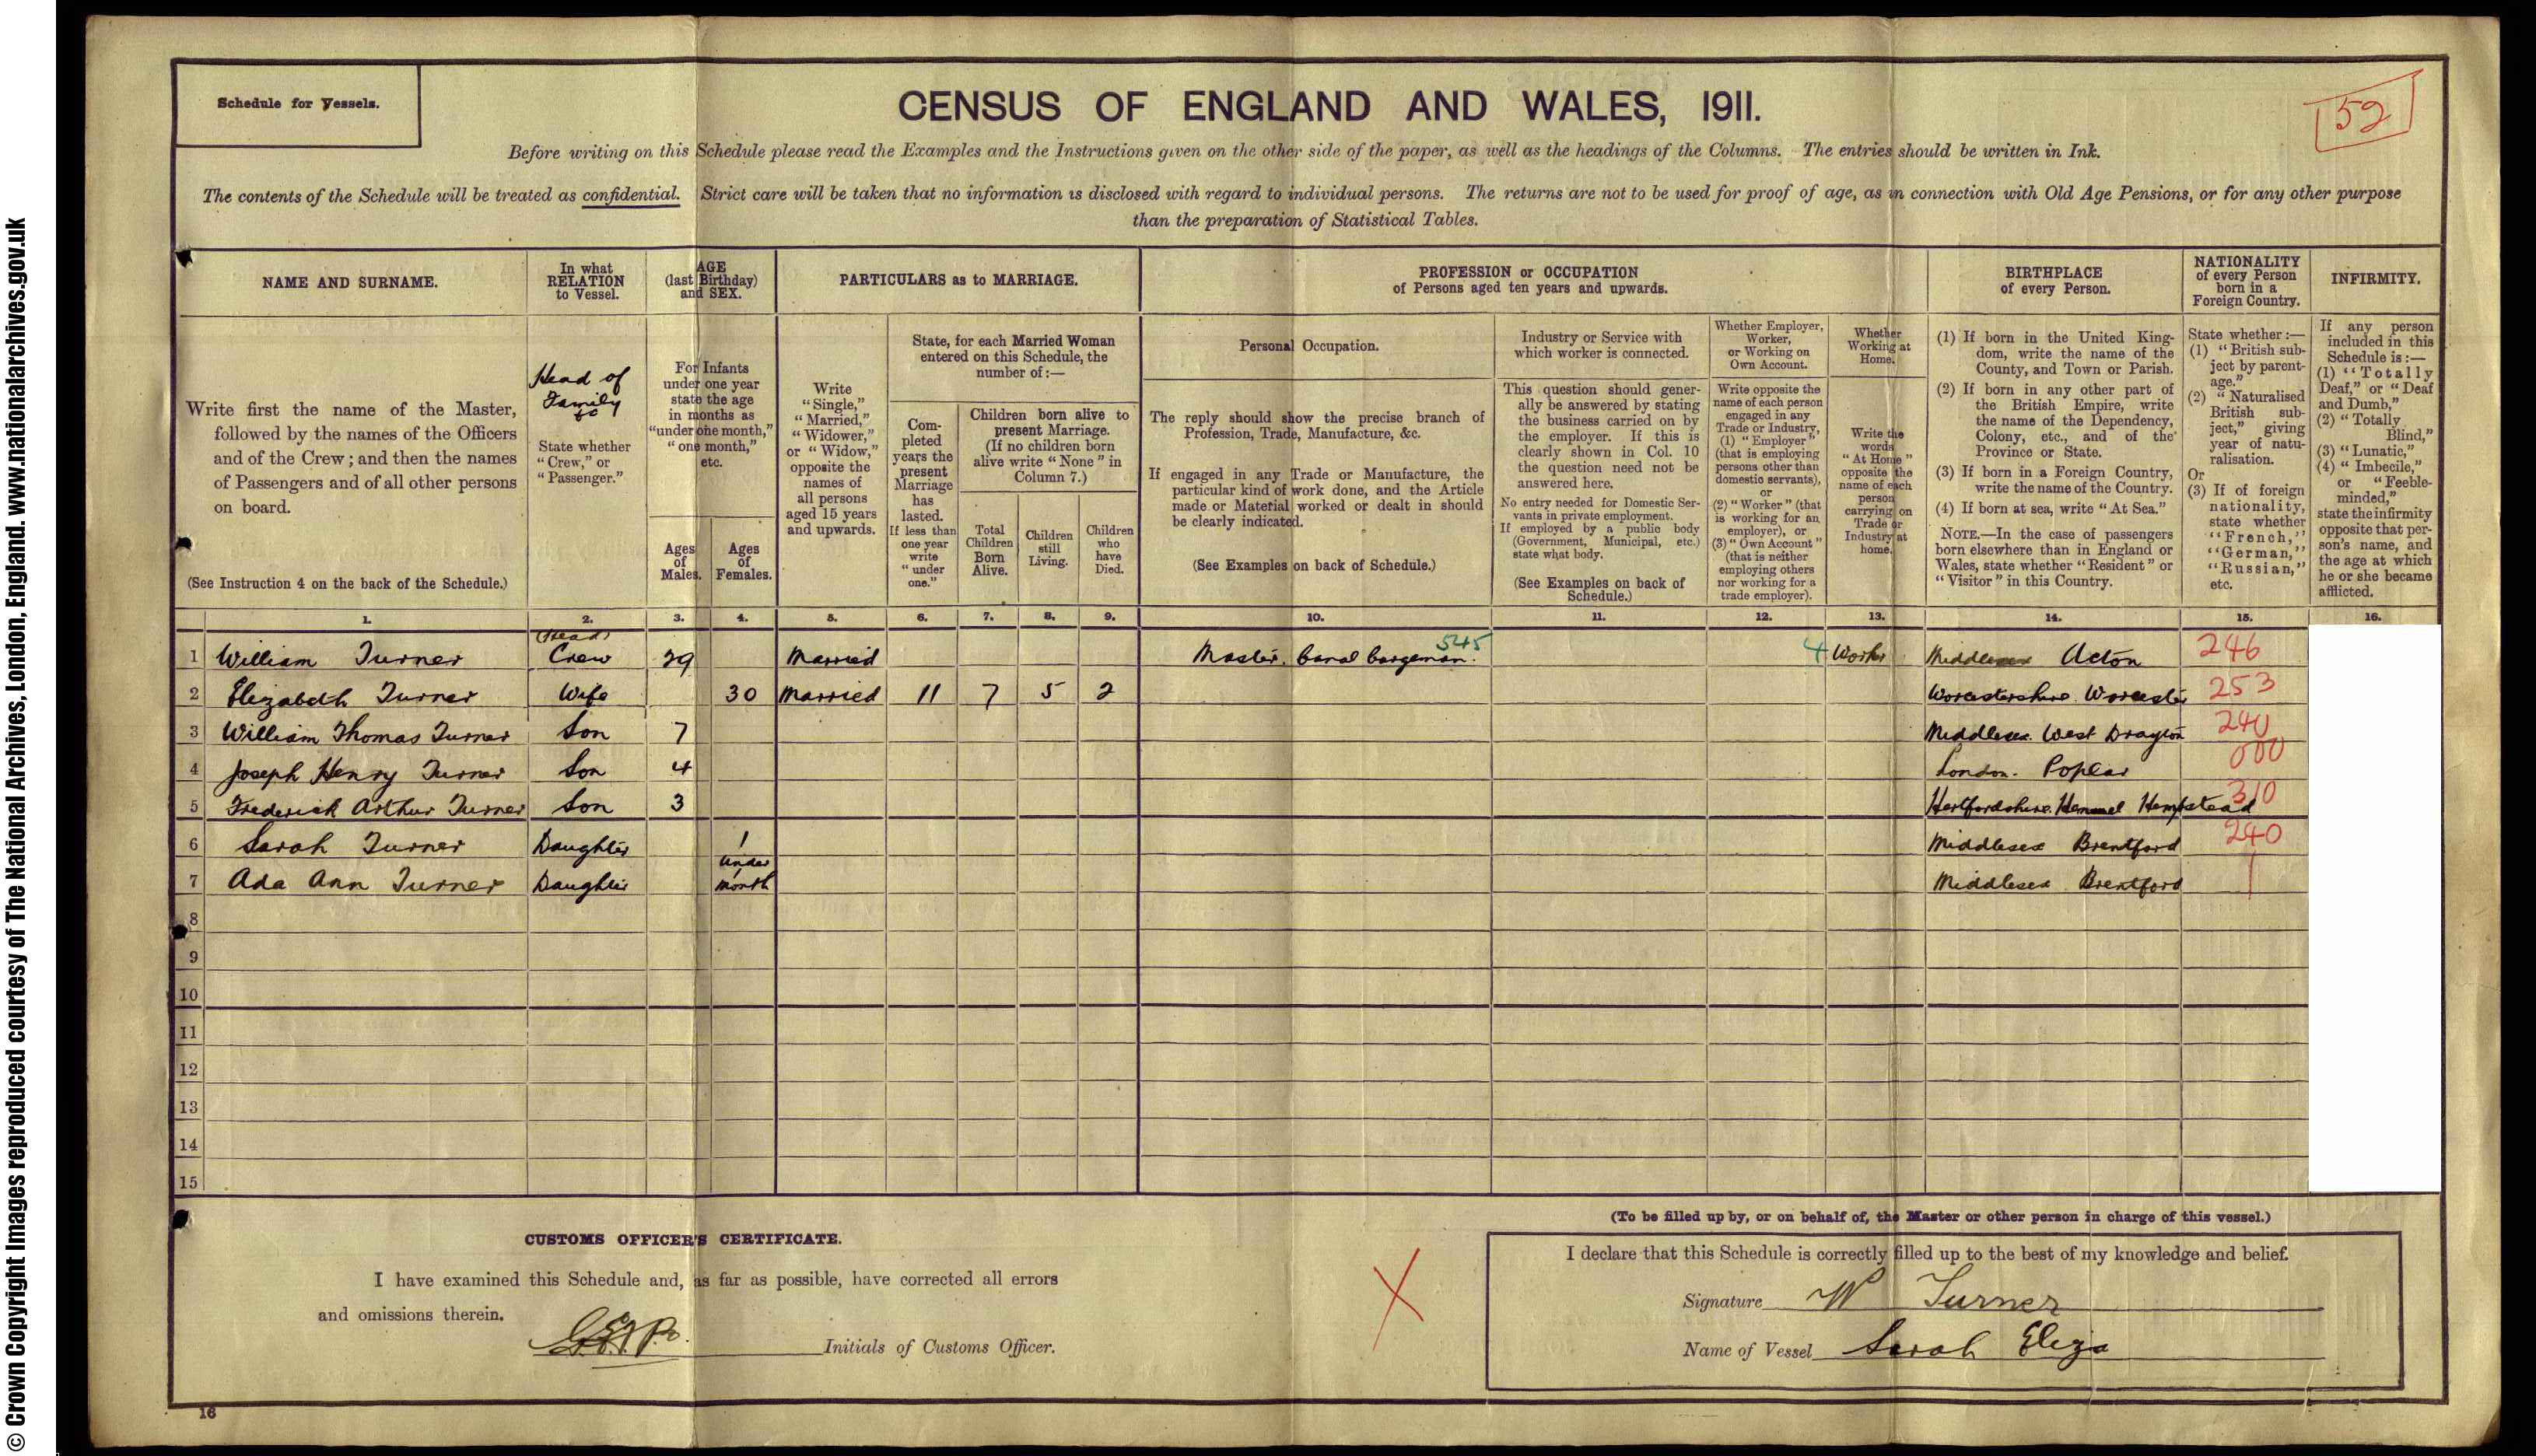 1911 England Census Record for William Turner (b1881)